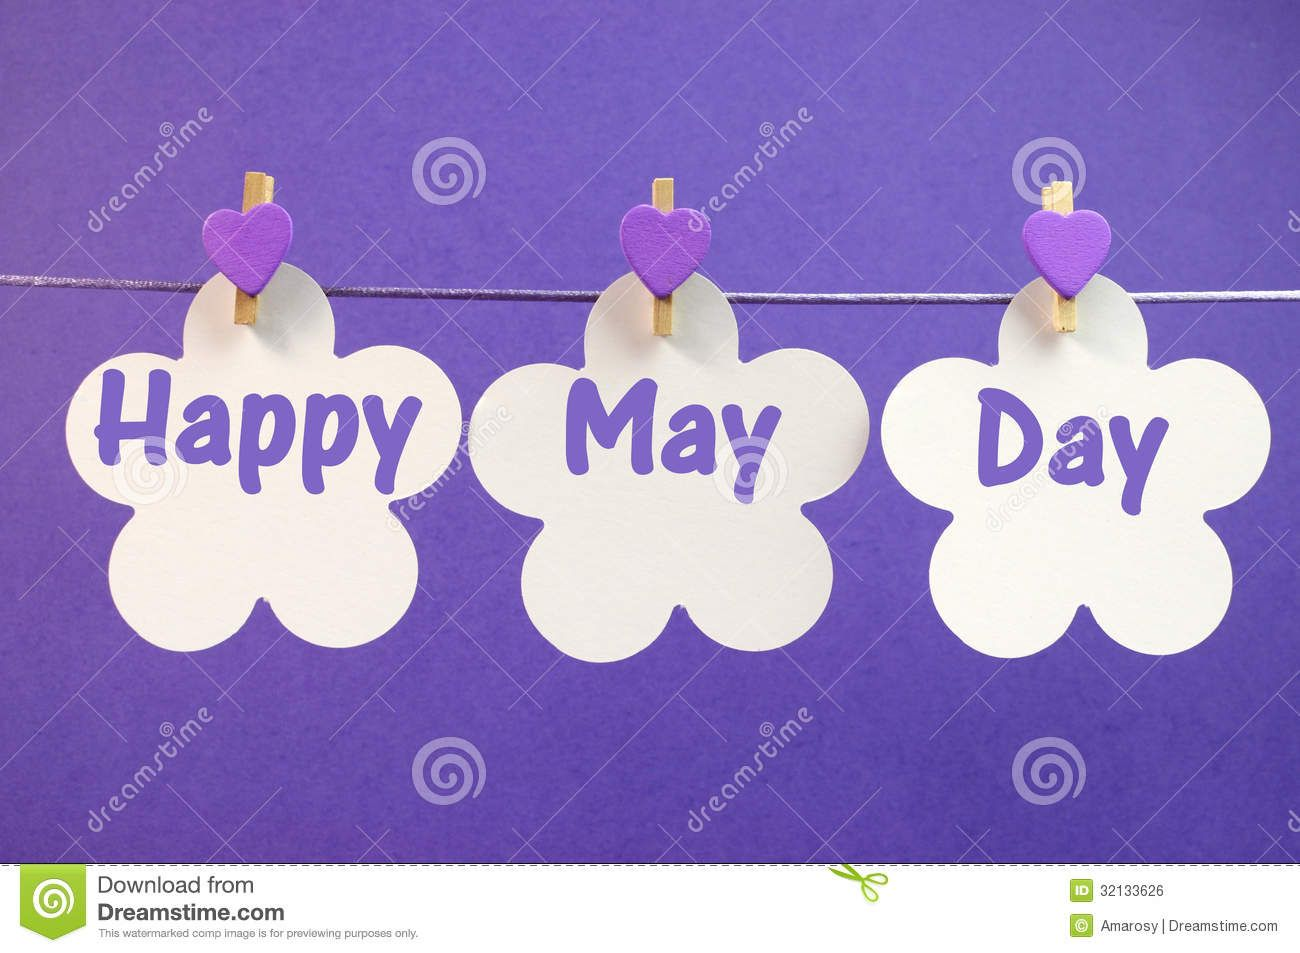 Happy may day cards may day pinterest project management and happy may day cards kristyandbryce Image collections